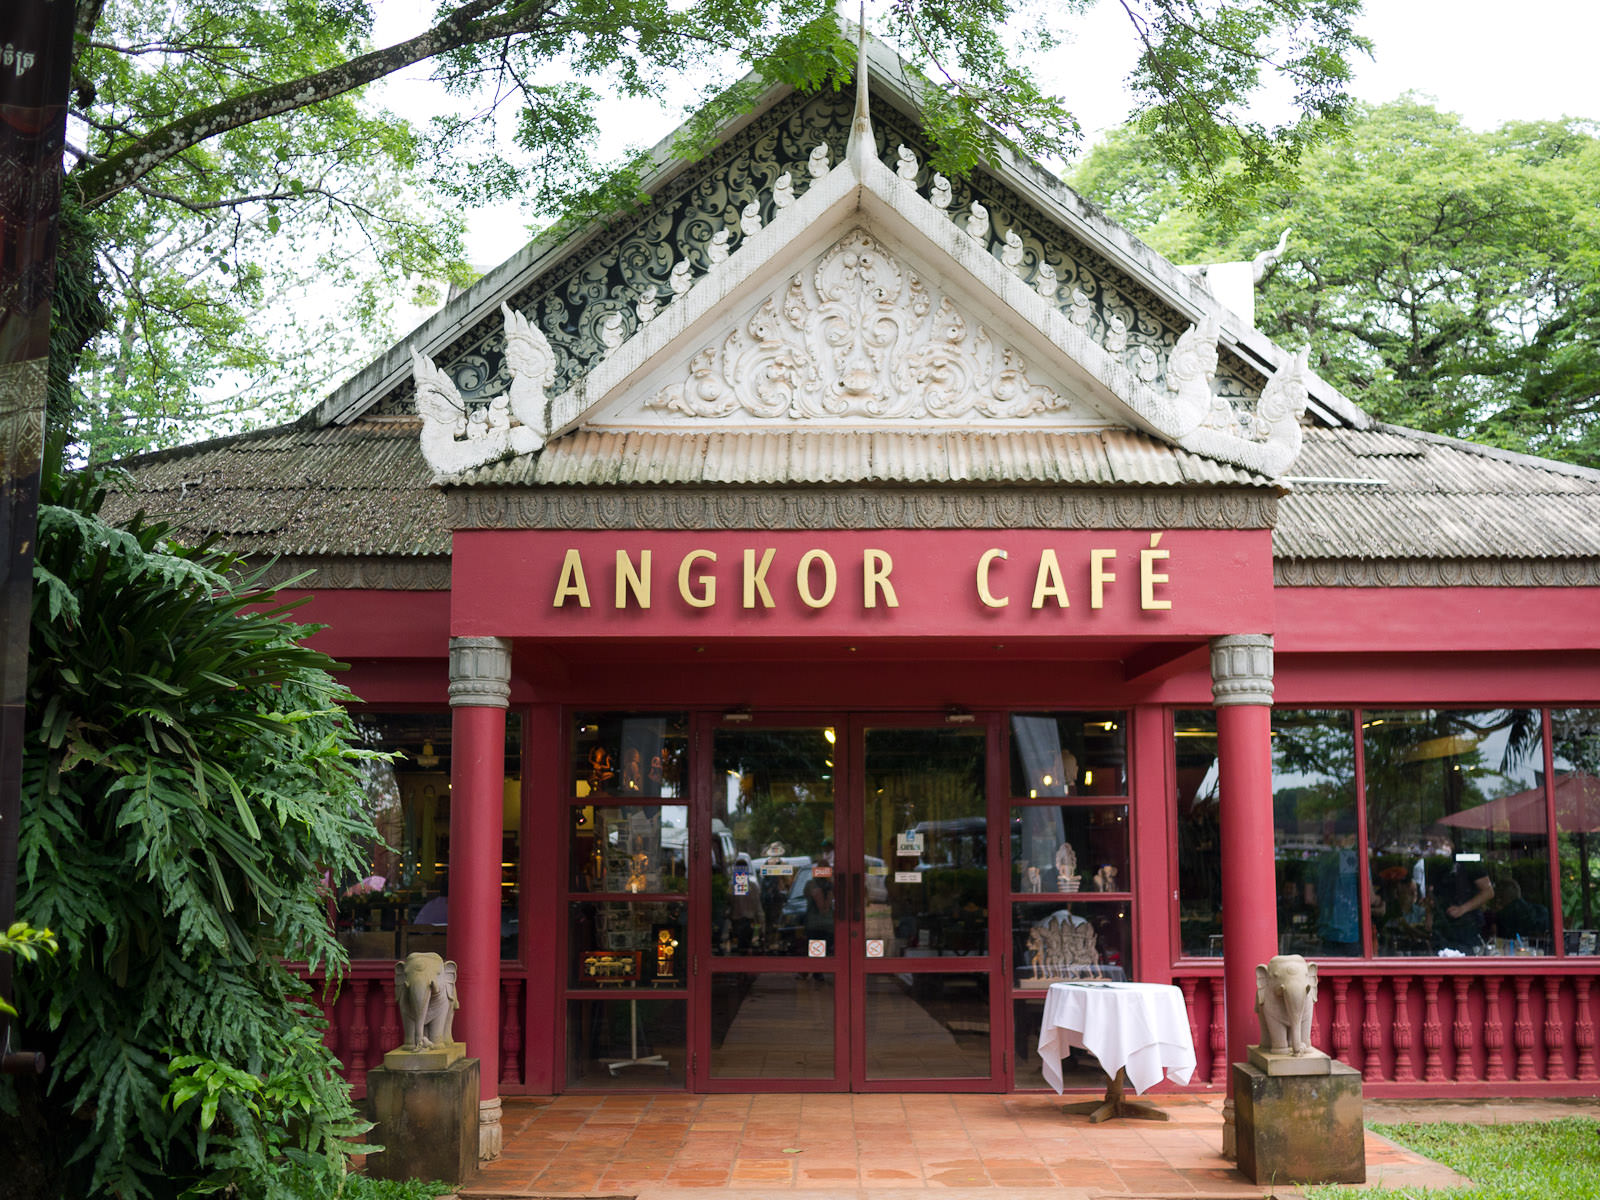 Angkor Cafe - entrance